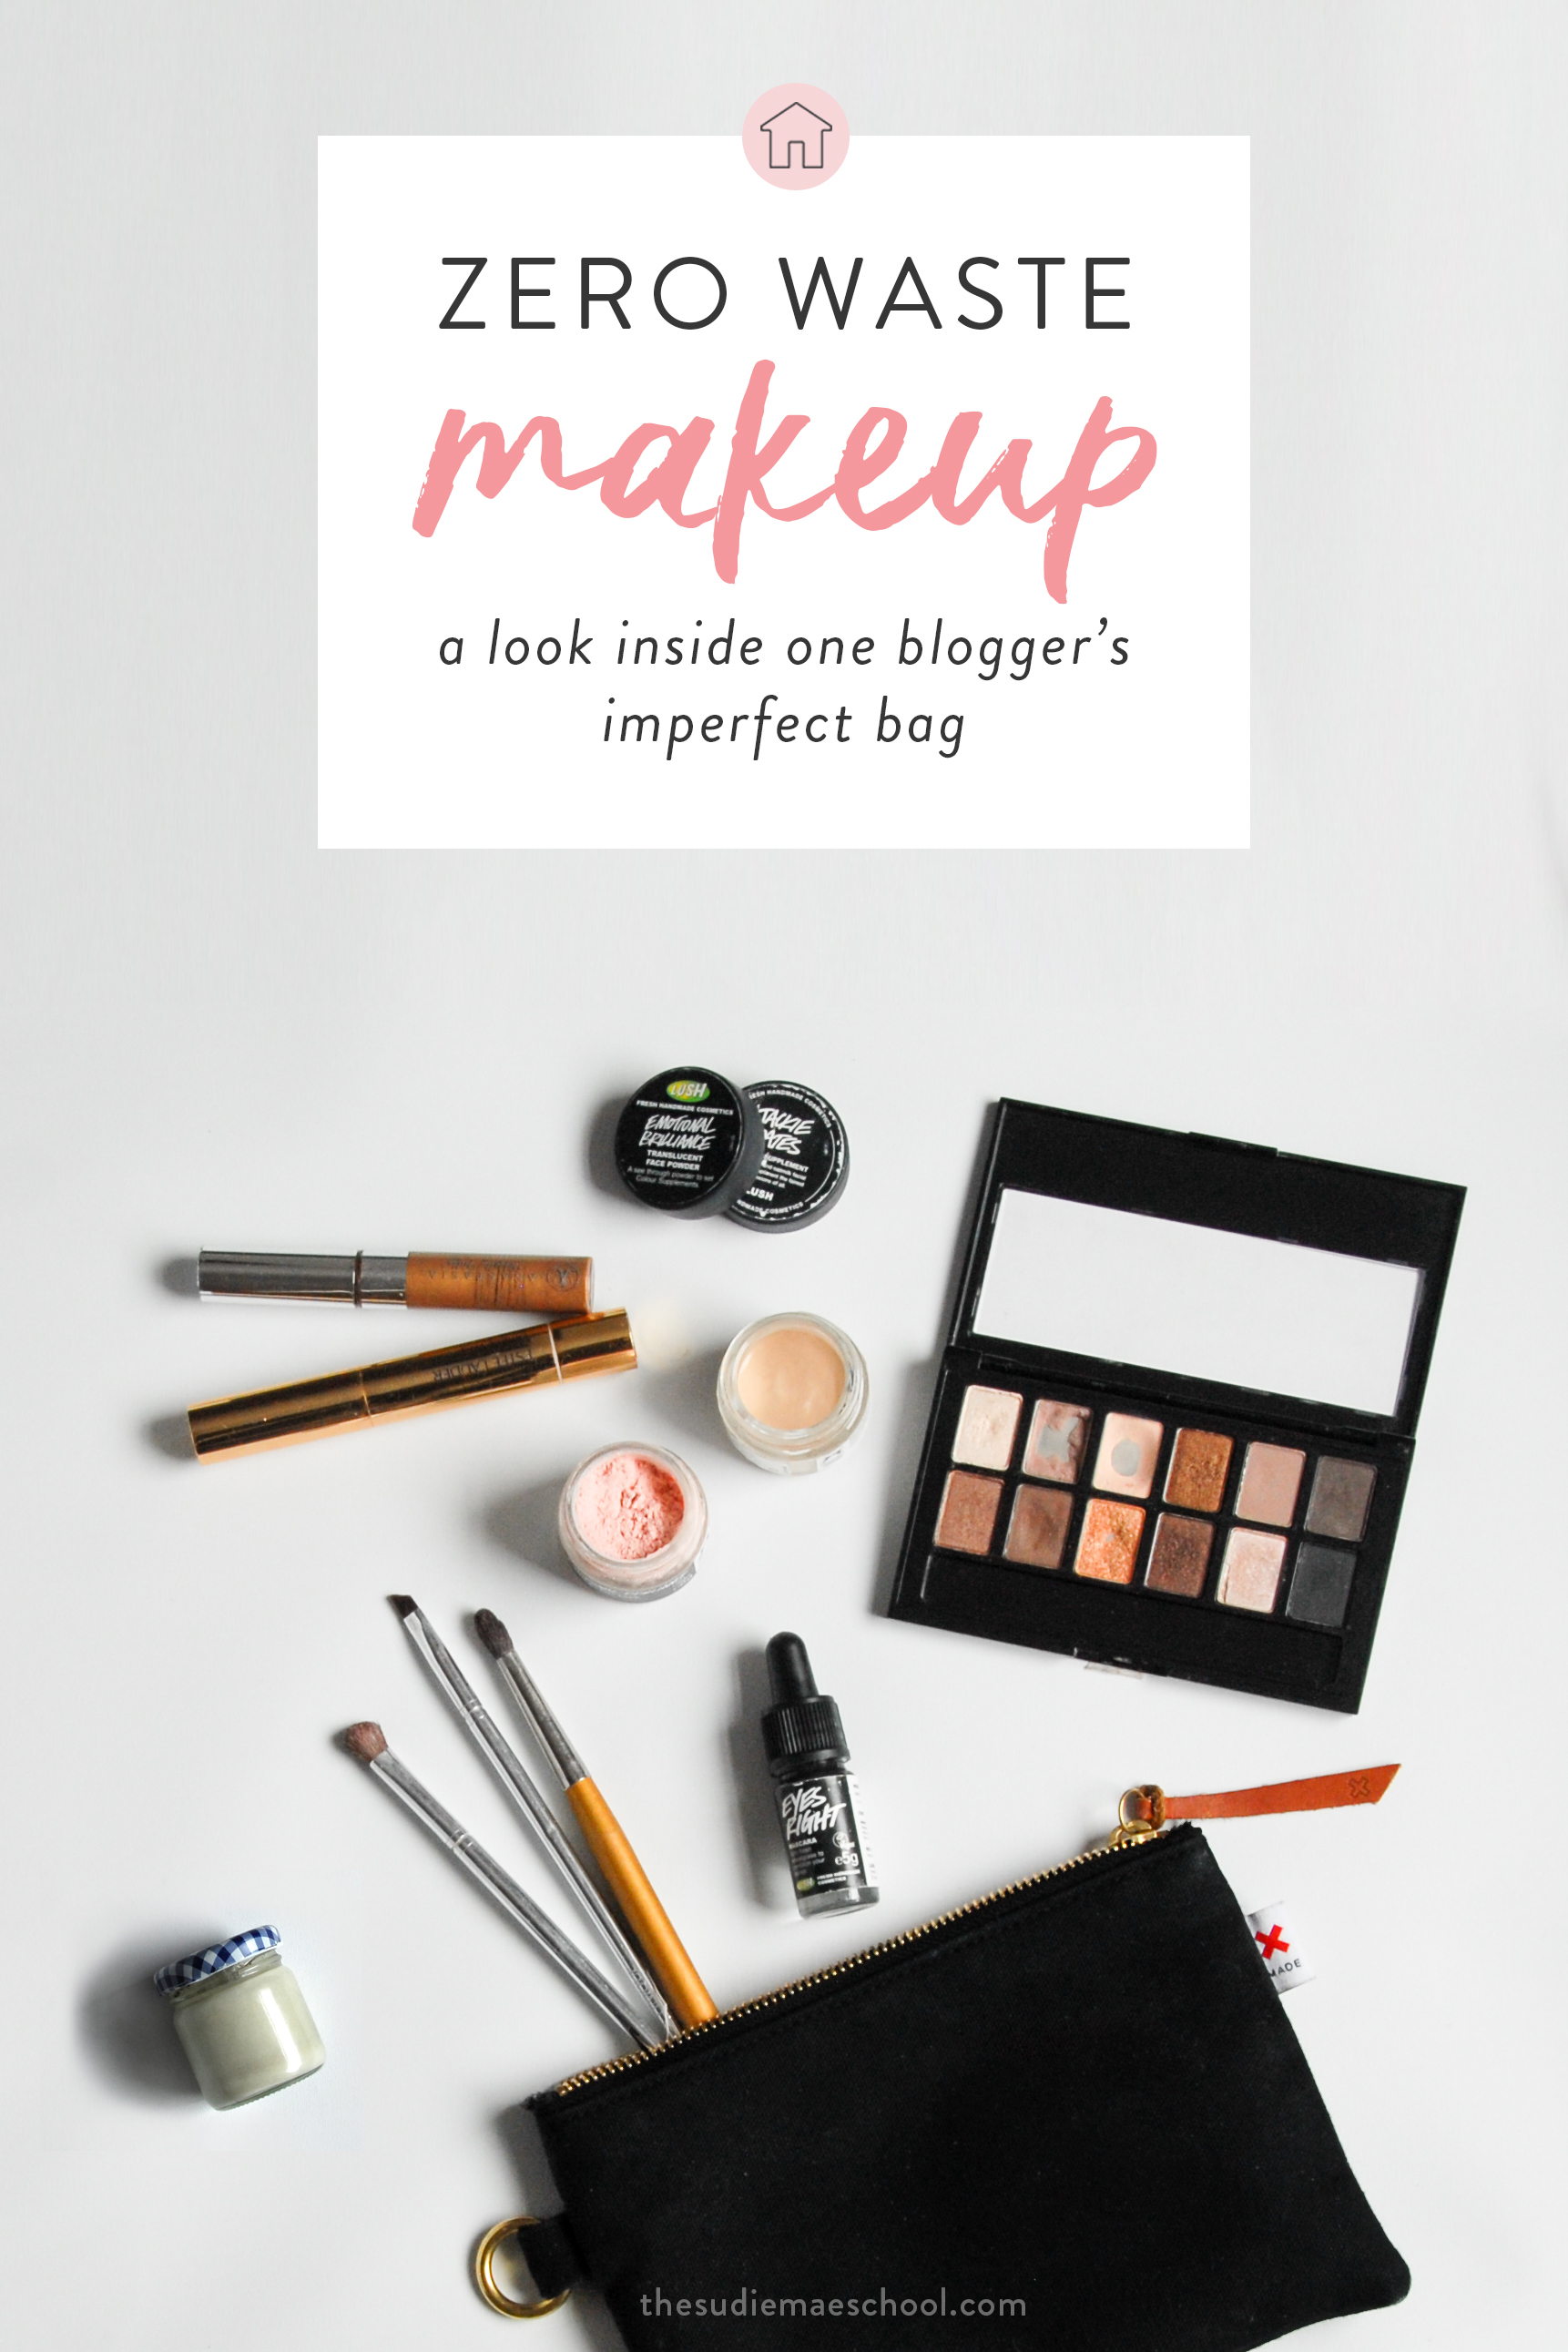 Zero Waste Makeup - A Look Inside One Blogger's Imperfect Bag